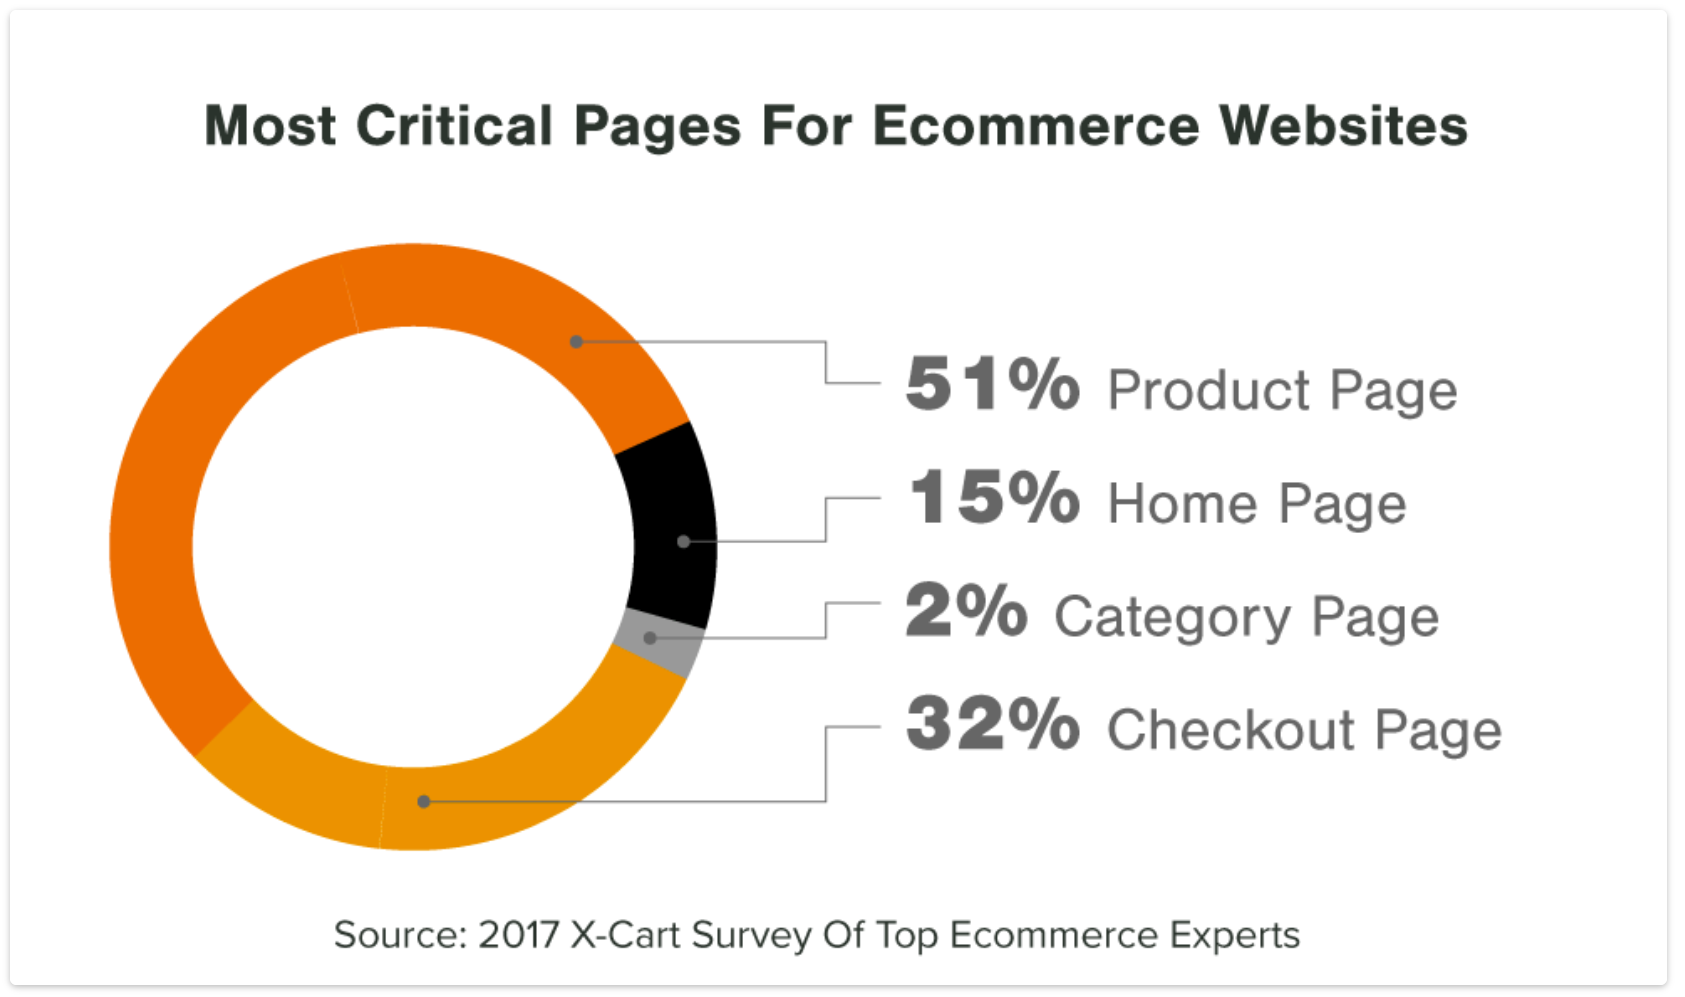 Product pages are the most critical resource for eCommerce websites